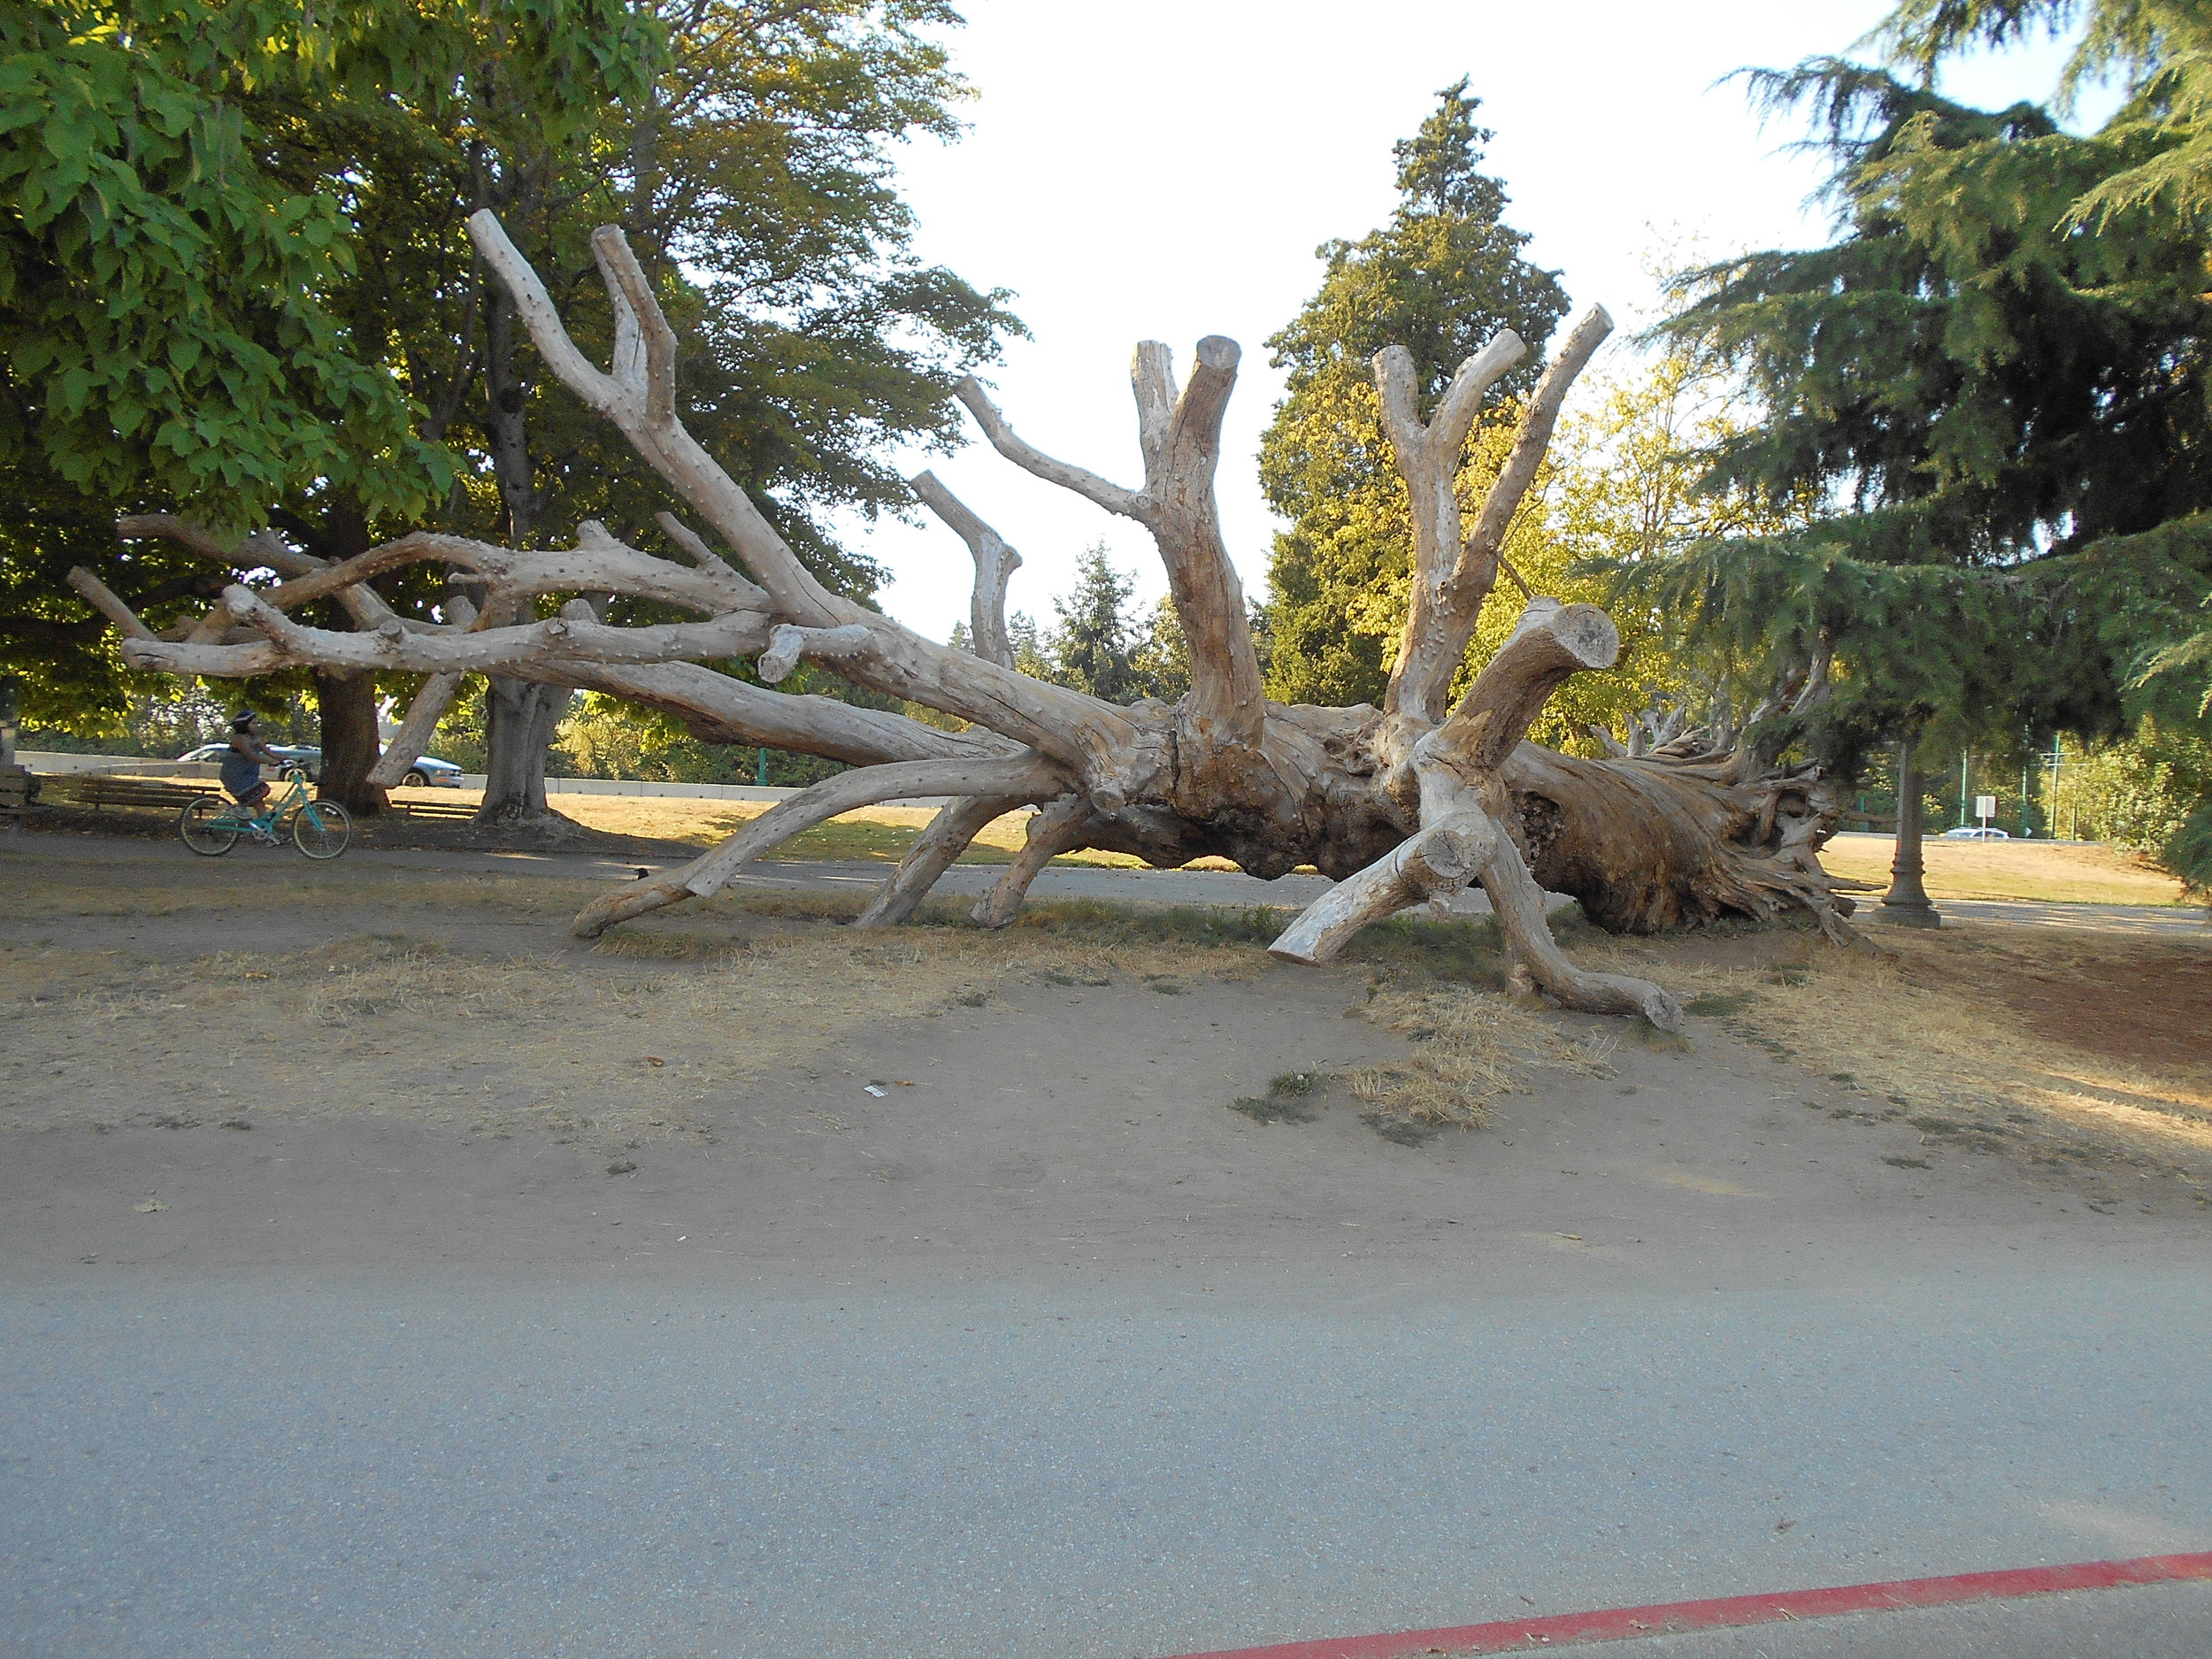 The large catalpa tree, blown down during the storm of December 2006, remains as a landmark.